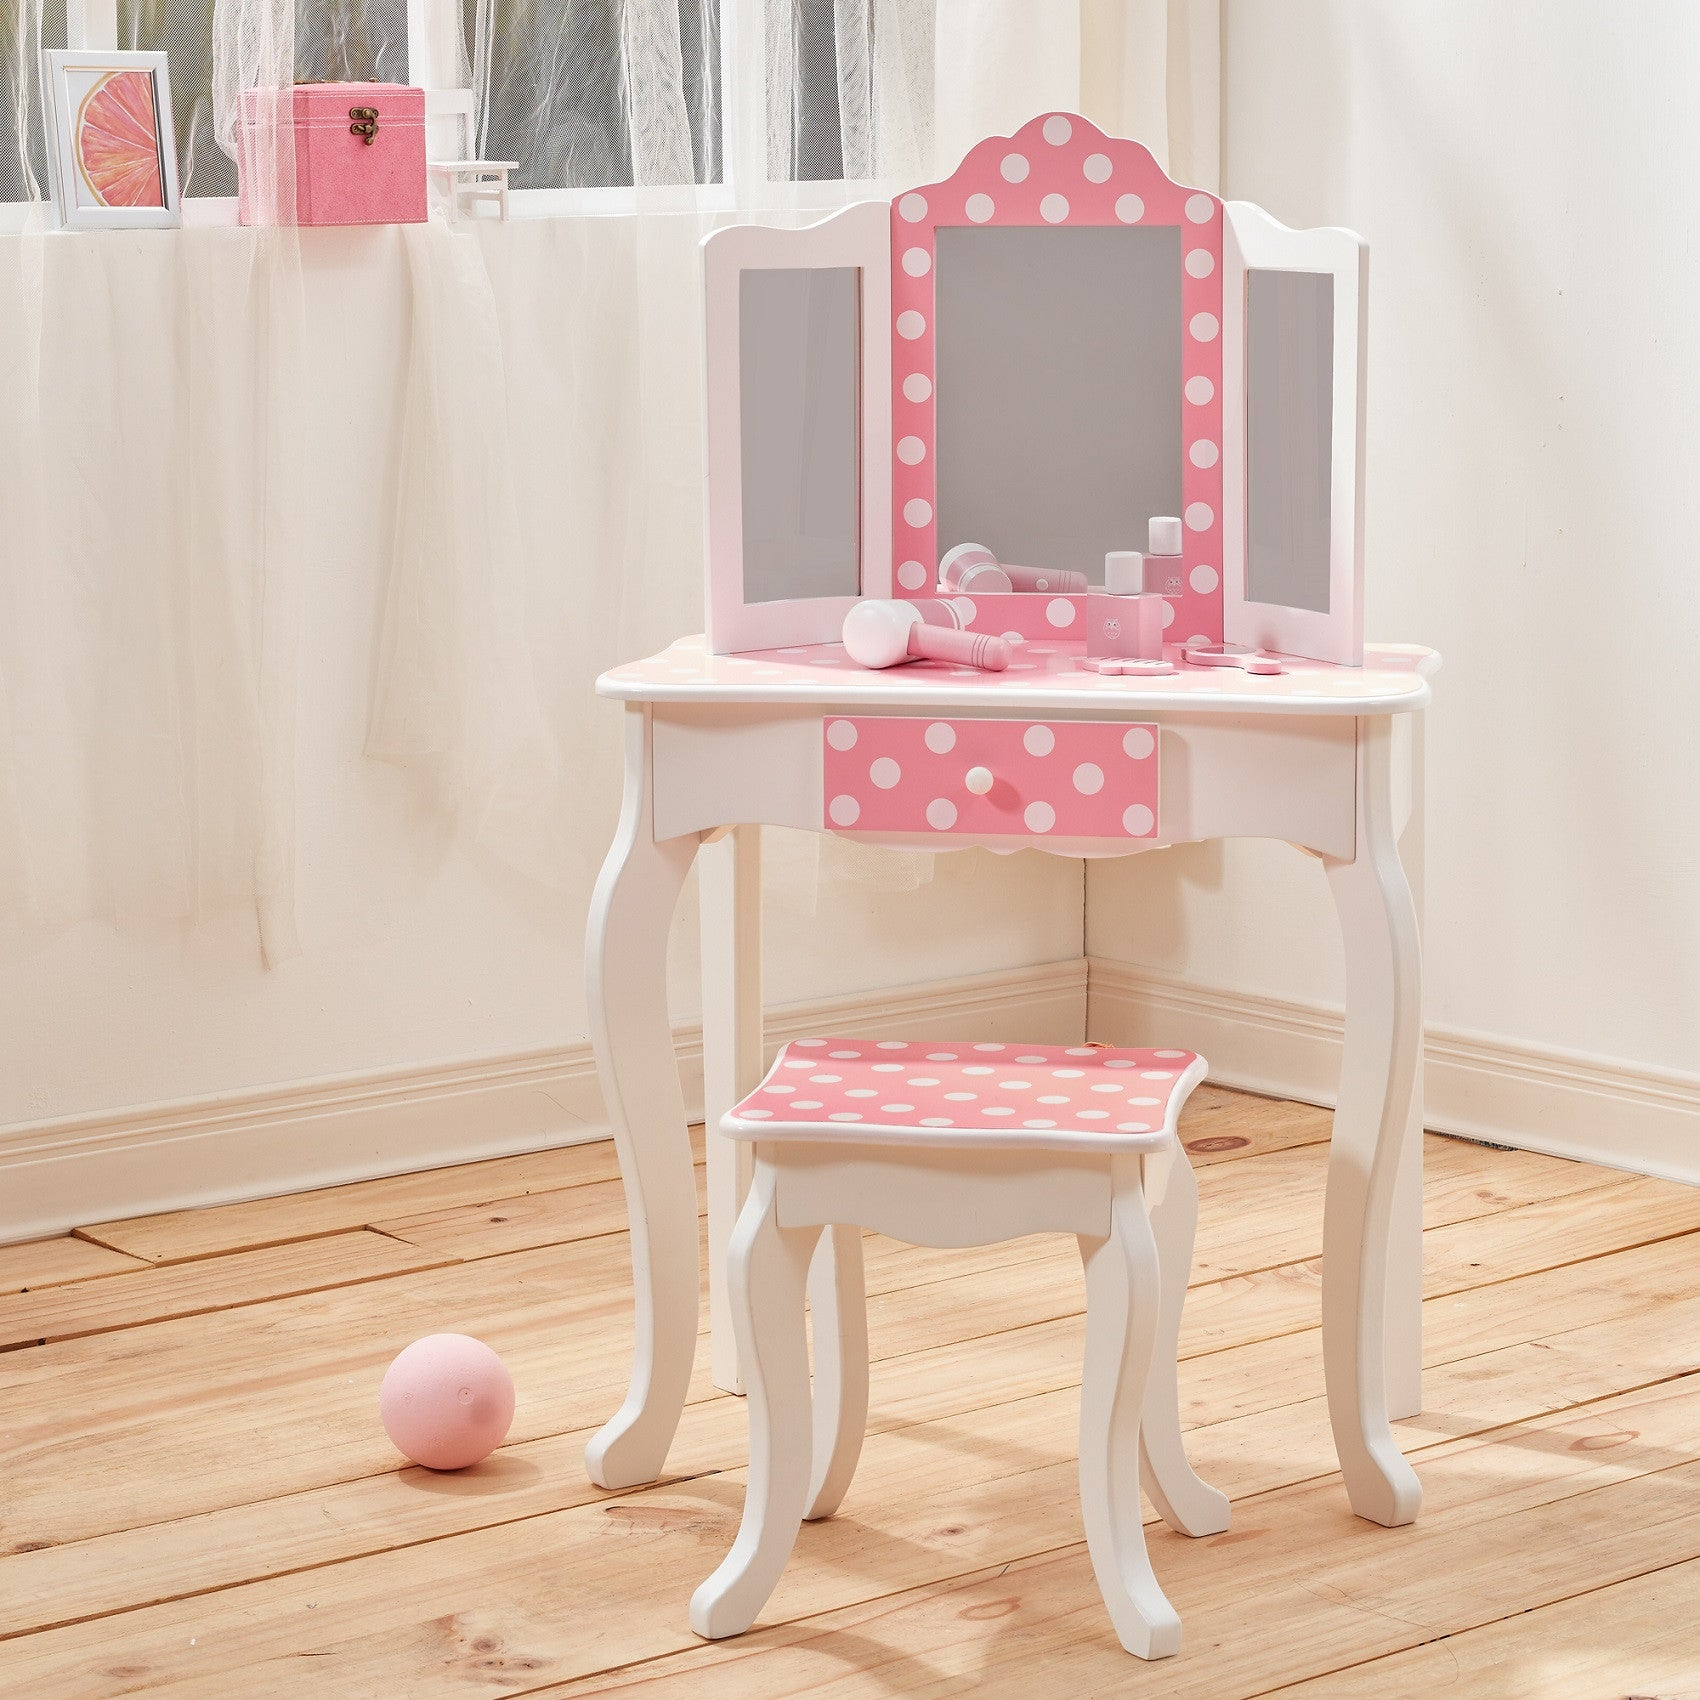 Childrens wooden vanity table image collections coffee table childrens pink polka dot wooden kid vanity dressing up table childrens polka dot wooden vanity dressing geotapseo Choice Image